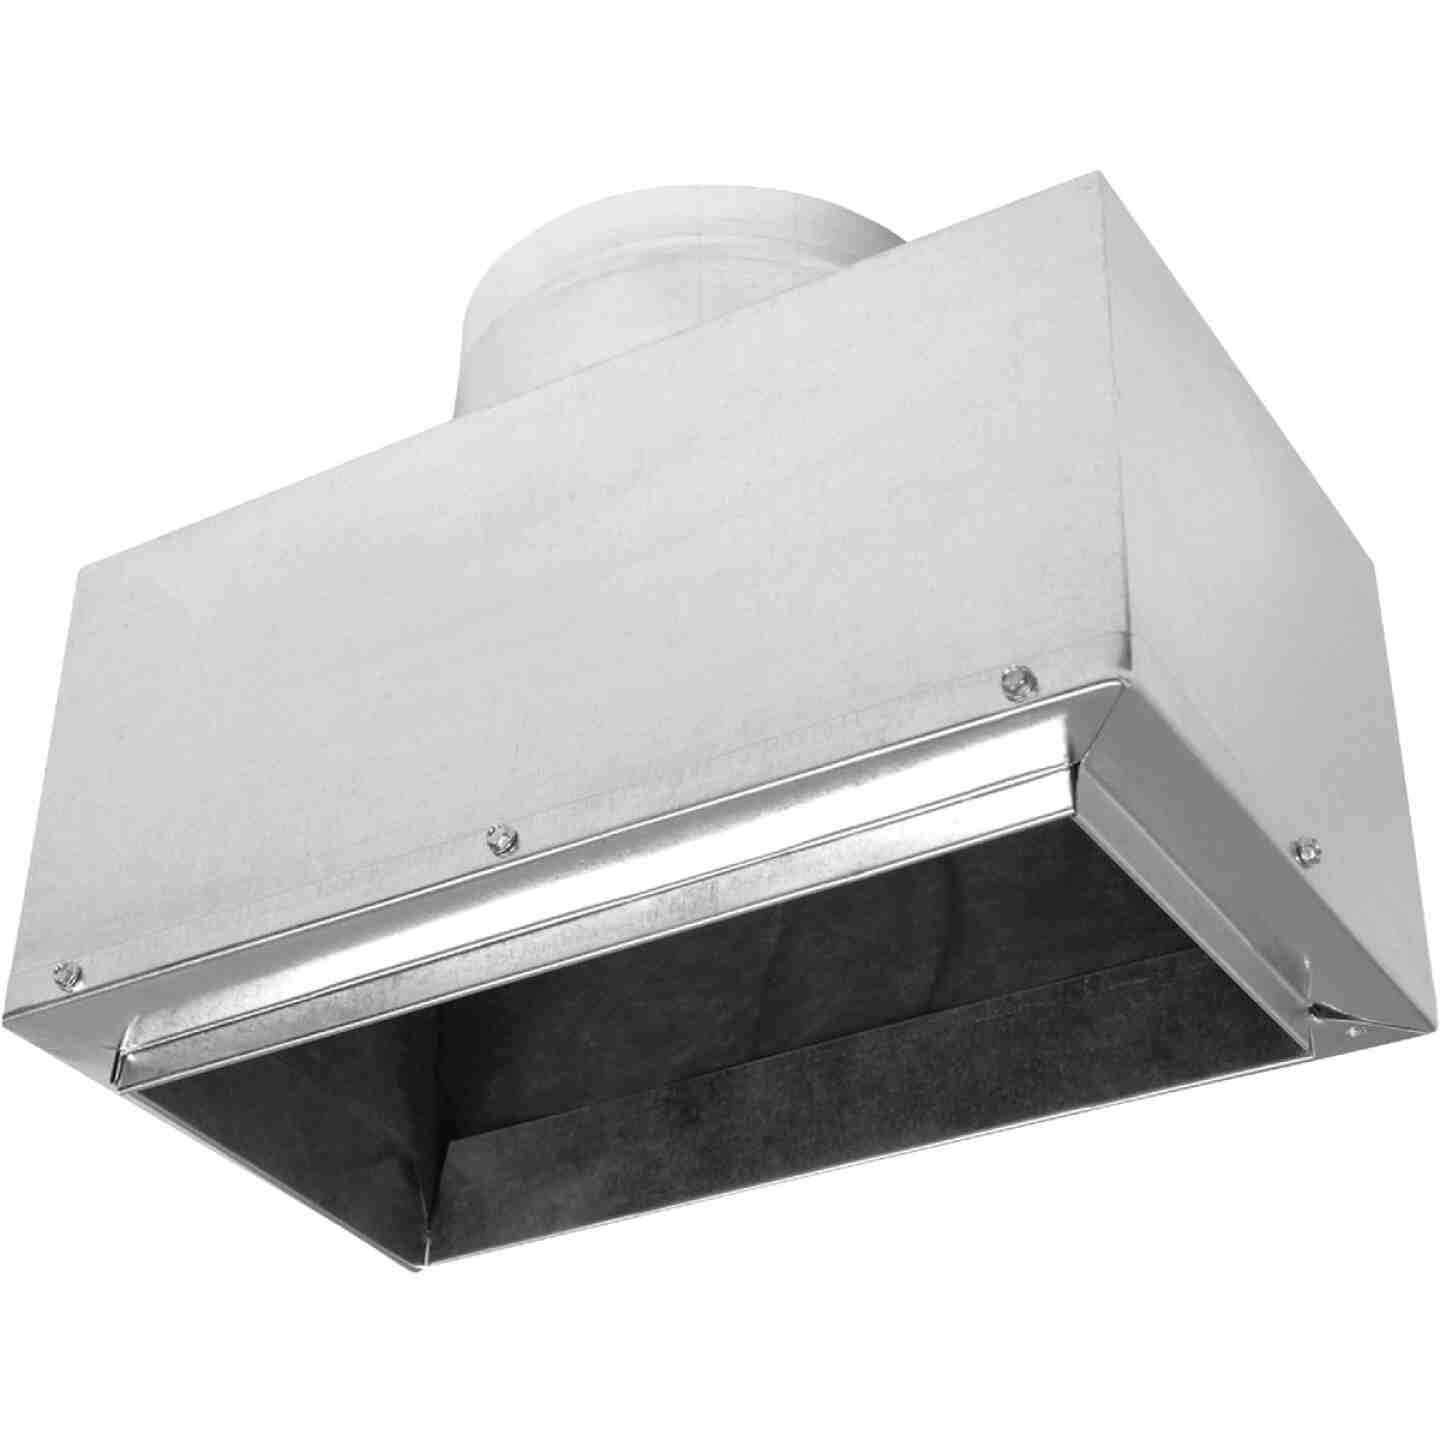 Imperial 12 In. x 6 In. x 8 In. Insulated Register Boot Image 1